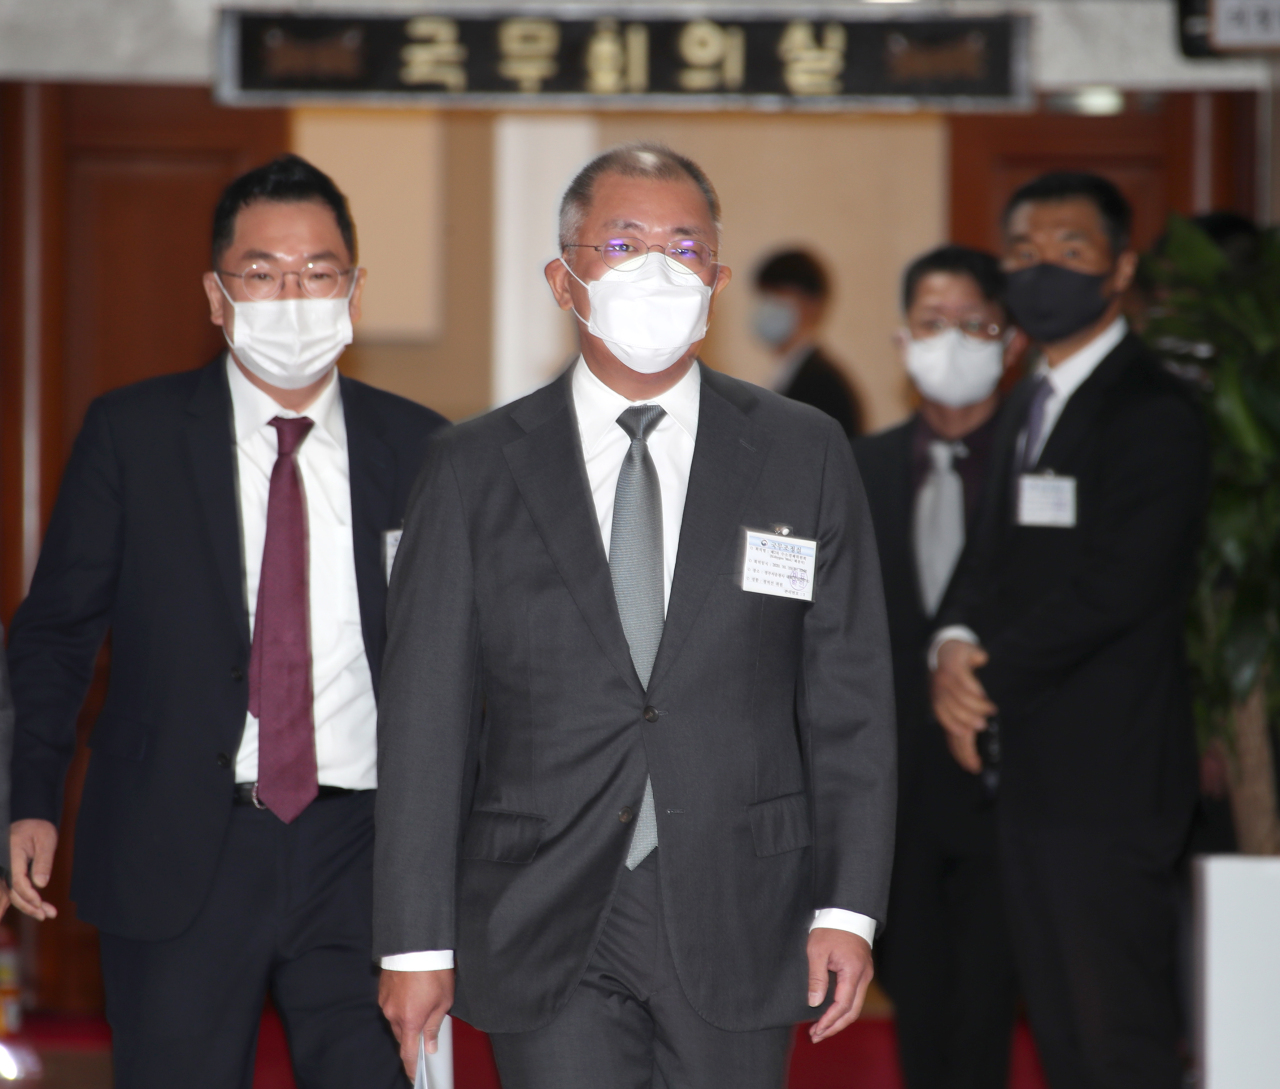 Hyundai Motor Group Chairman Chung Euisun heads to the second hydrogen economy committee meeting held at Government Complex Seoul in Seoul on Thursday. (Yonhap)